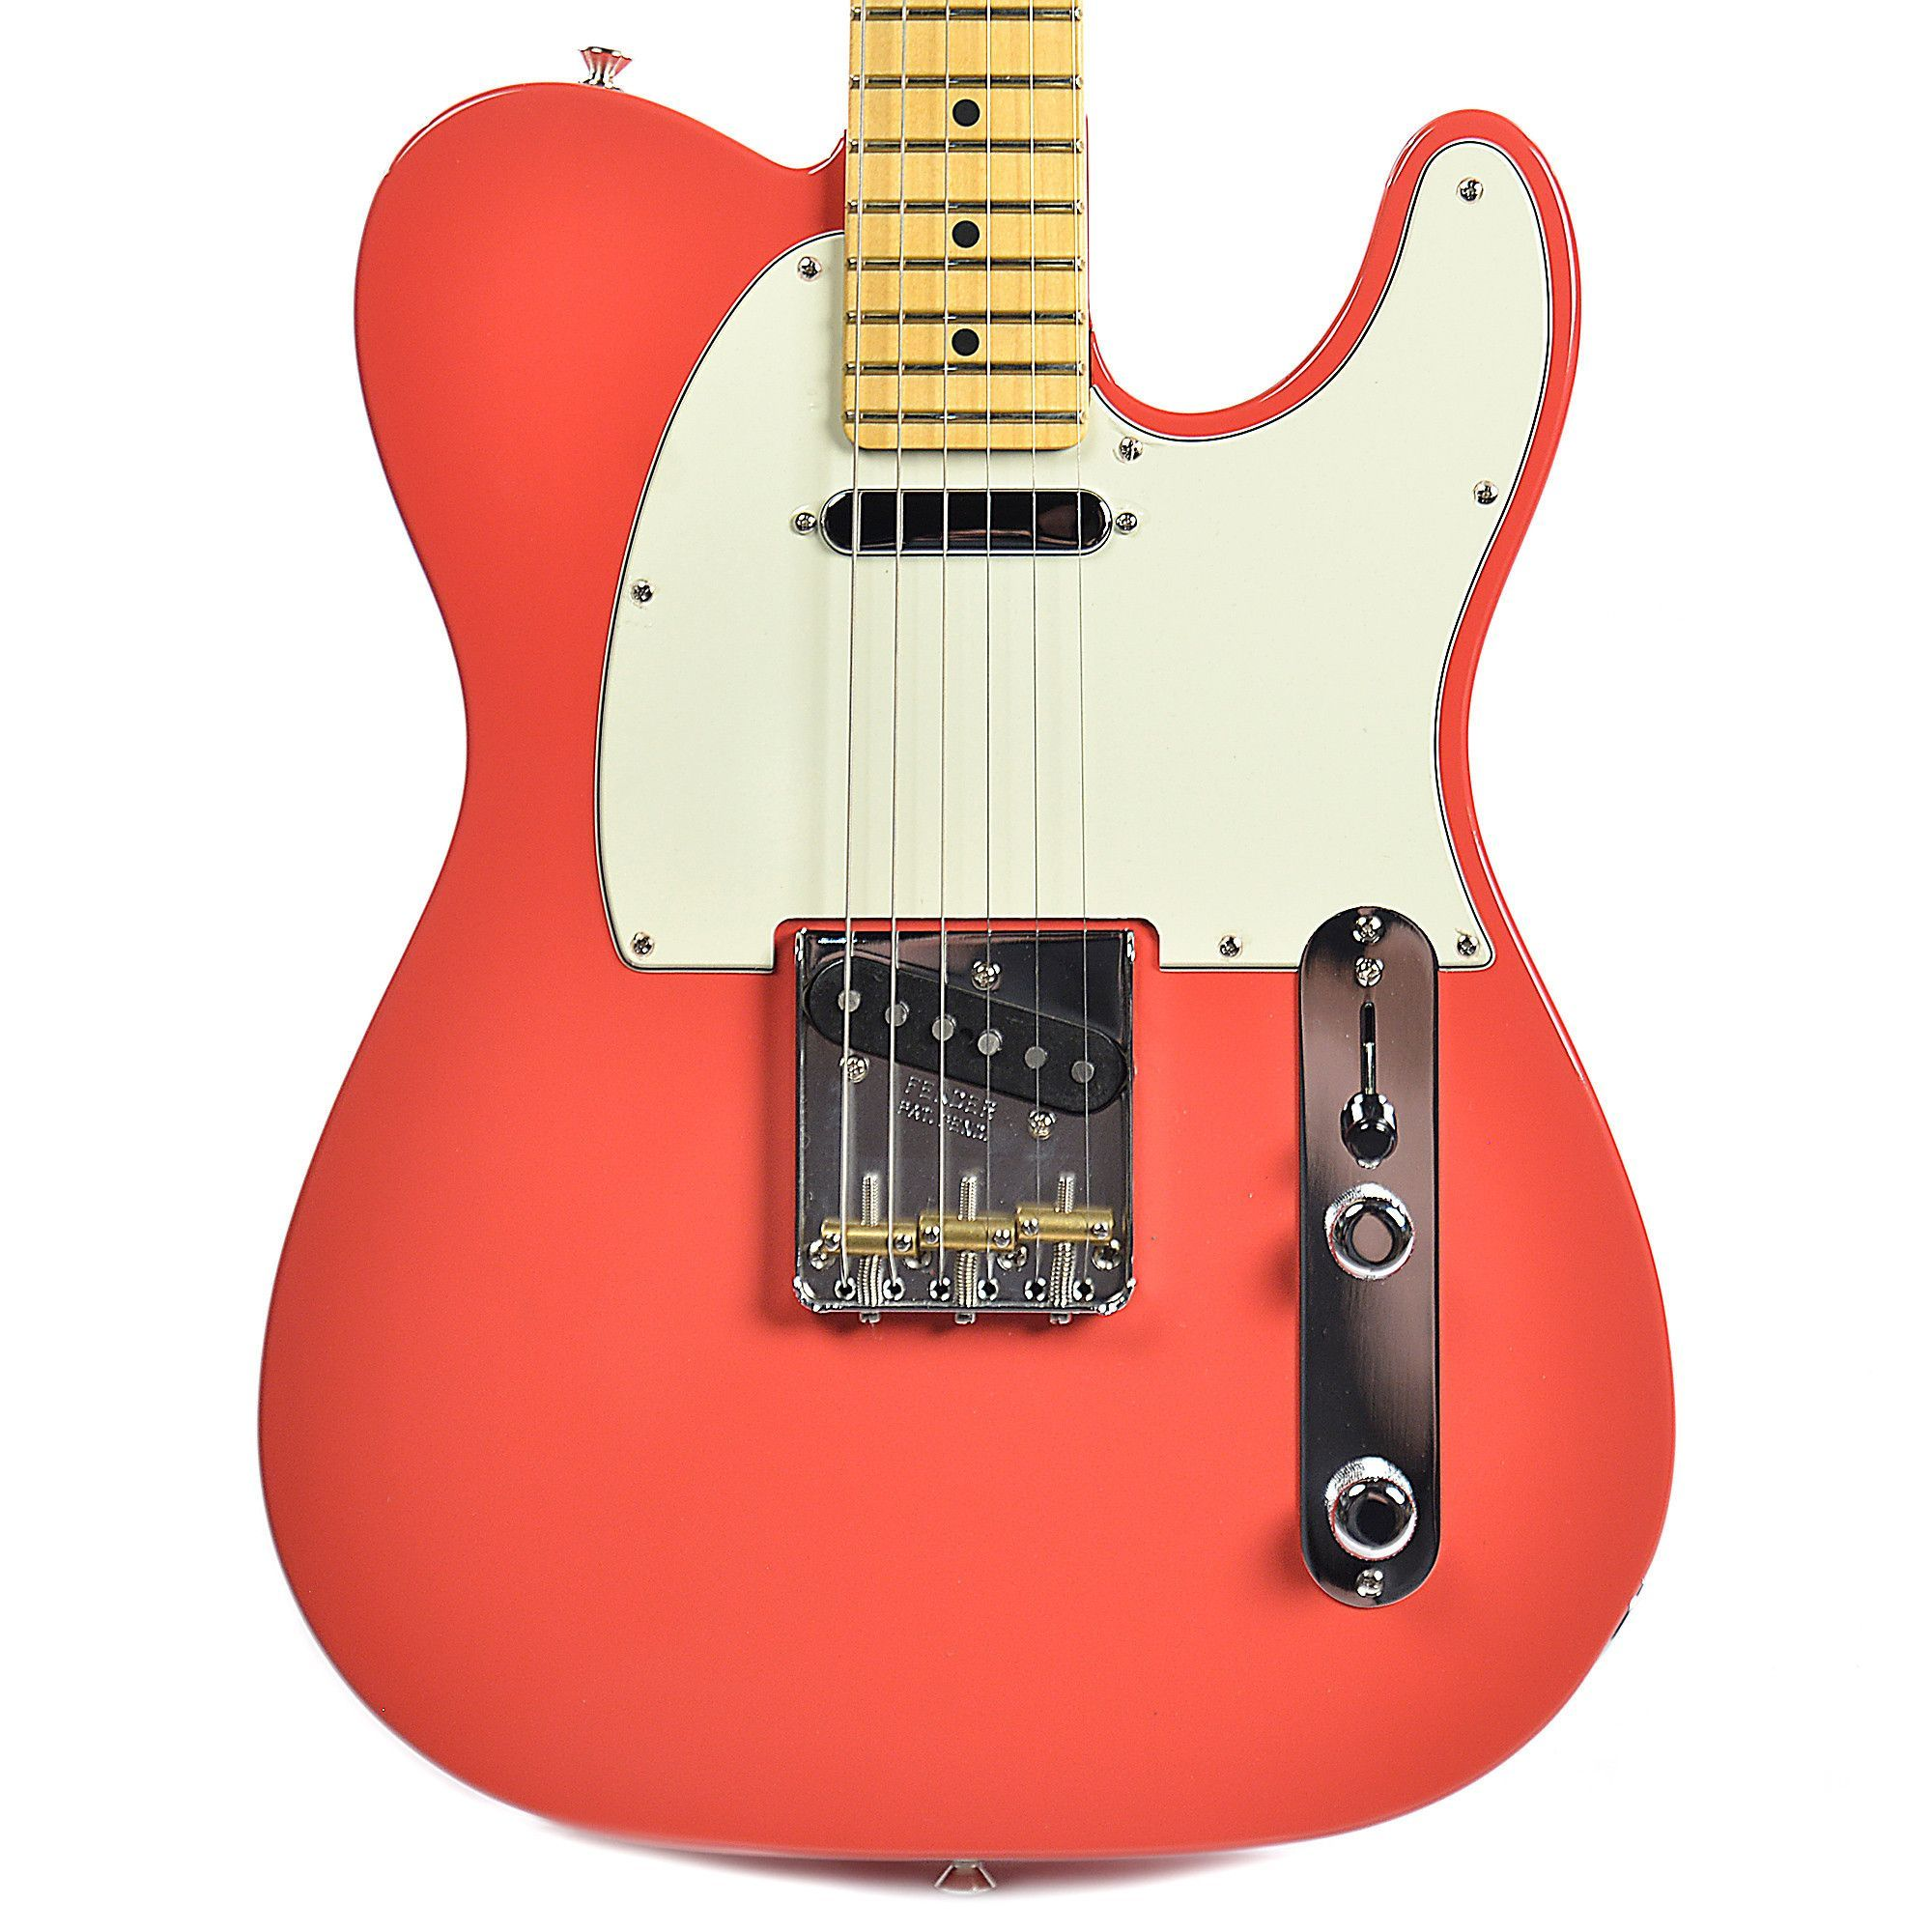 Fender American Special Telecaster Wiring Diagram | Wiring Library